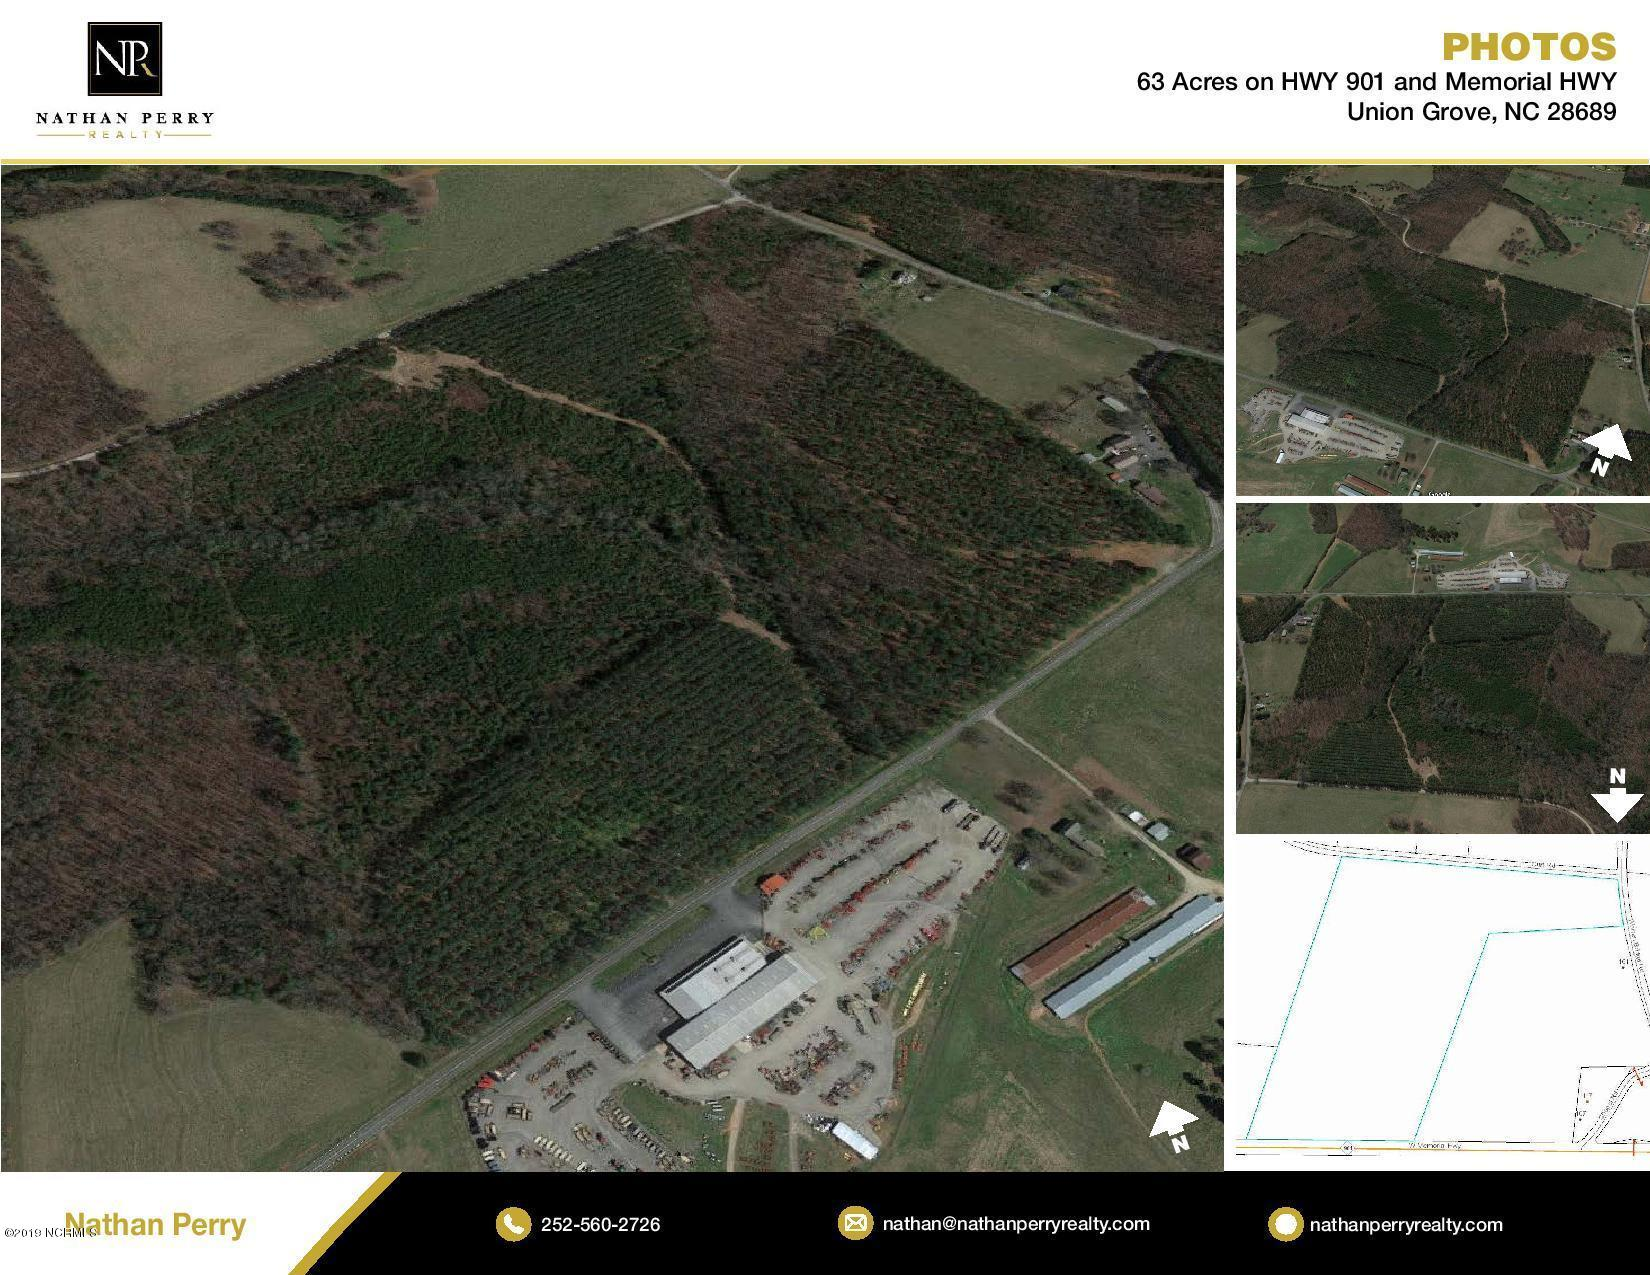 Lot 0 Memorial Highway, Union Grove, North Carolina 28689, ,Wooded,For sale,Memorial,100147744